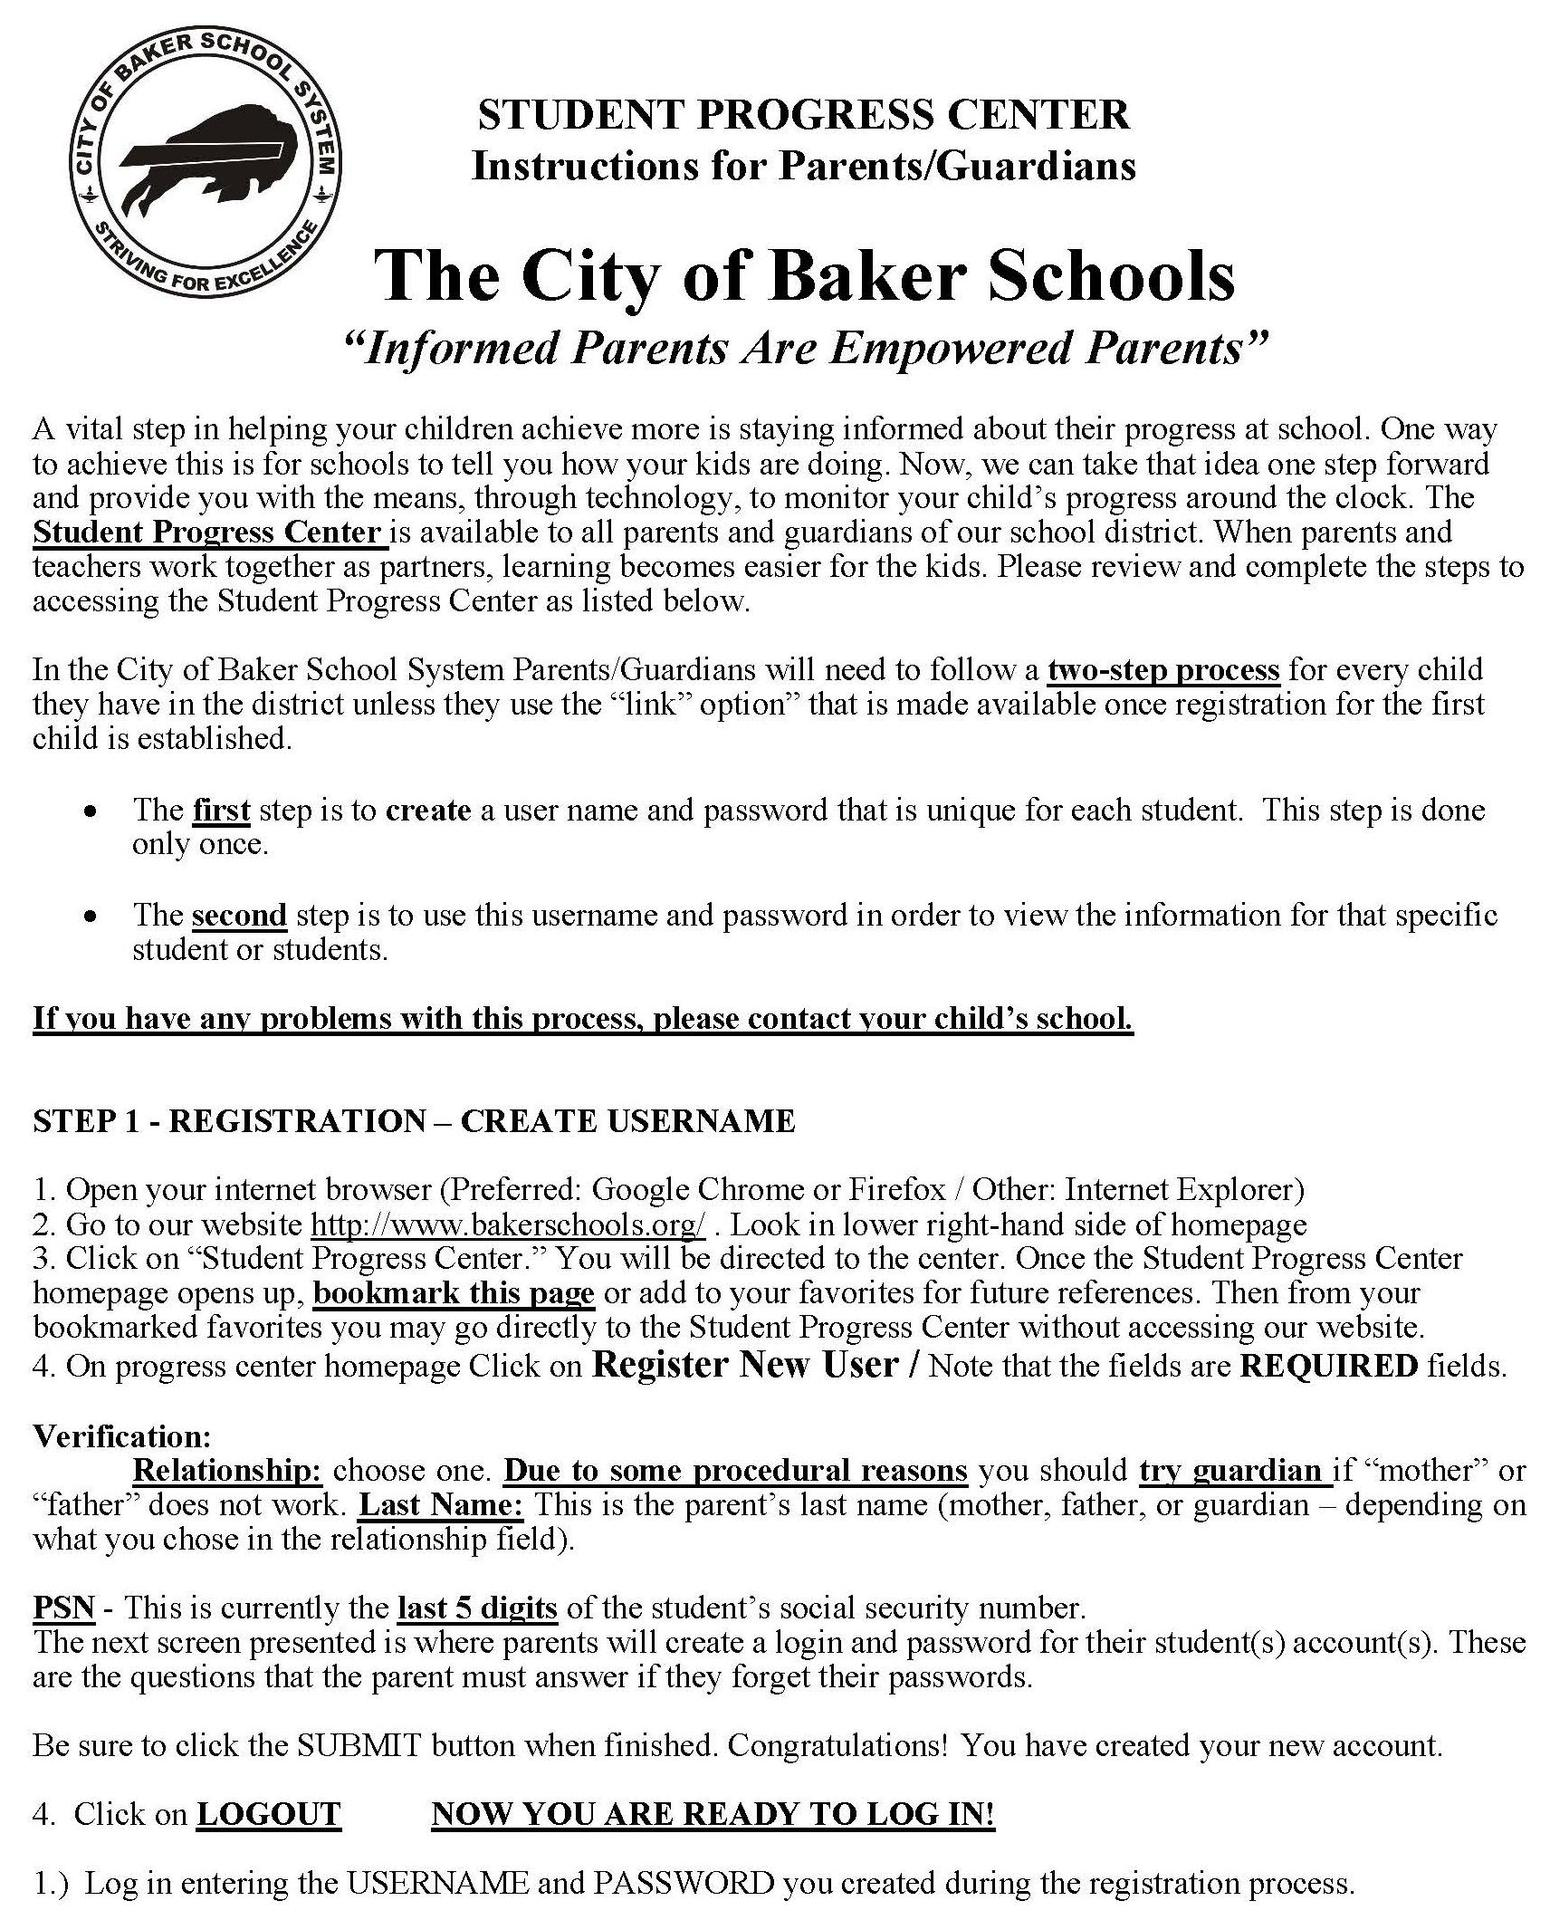 a photo of instructions for setting up an account in the Baker Student Progress Center